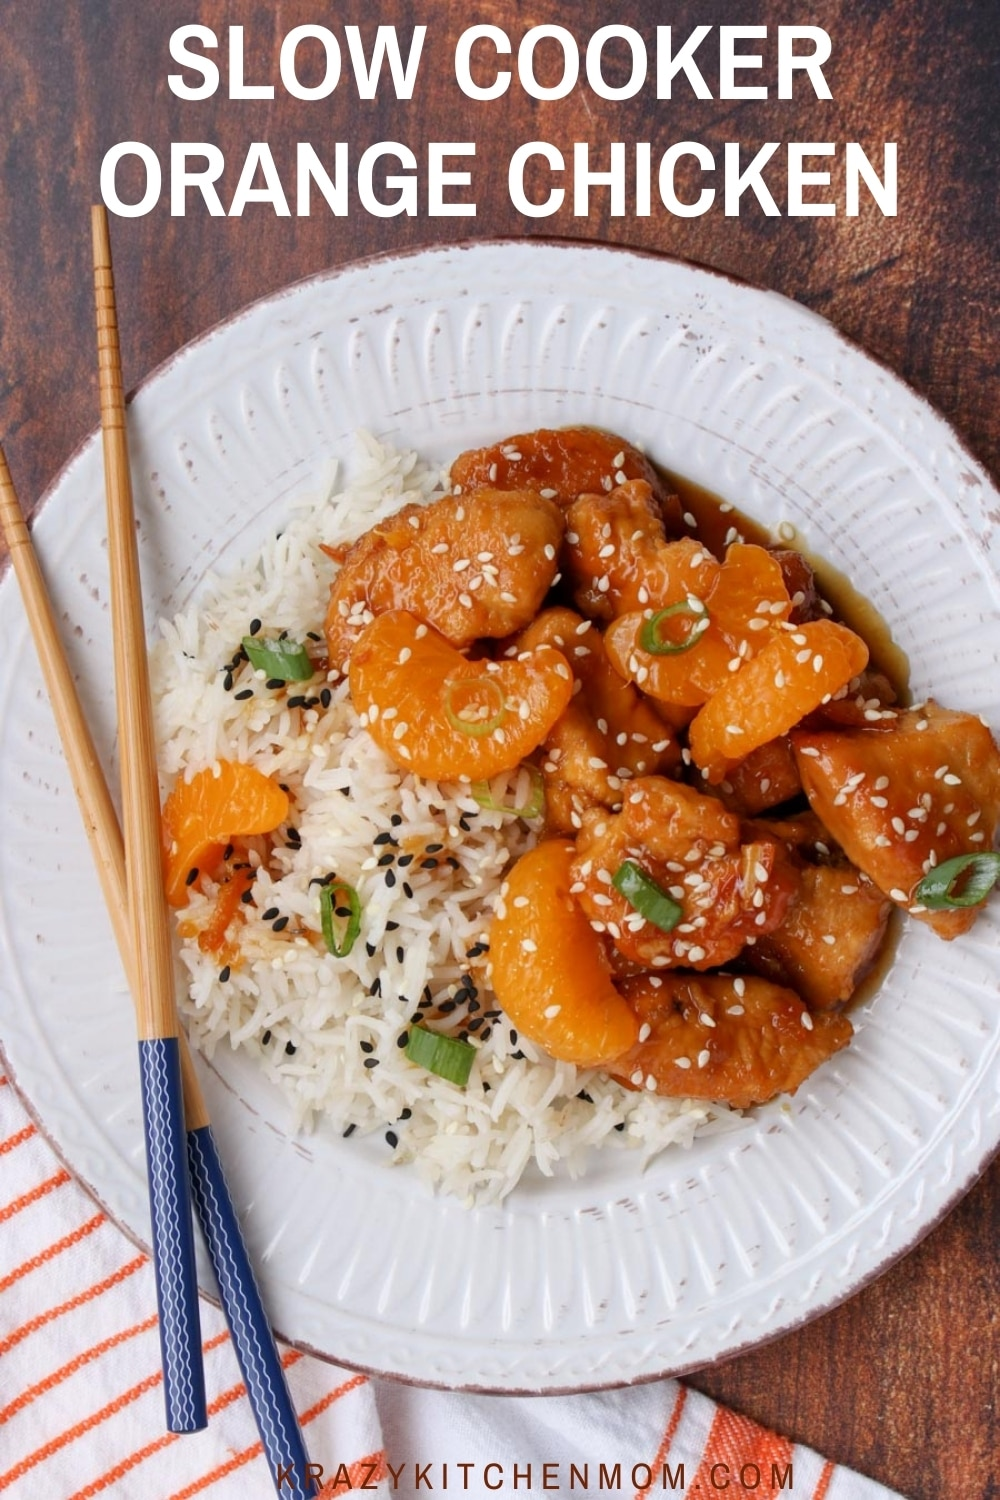 Make Orange Chicken at home! Super tender chicken drenched in a sweet tangy glaze that rivals any take out place. via @krazykitchenmom